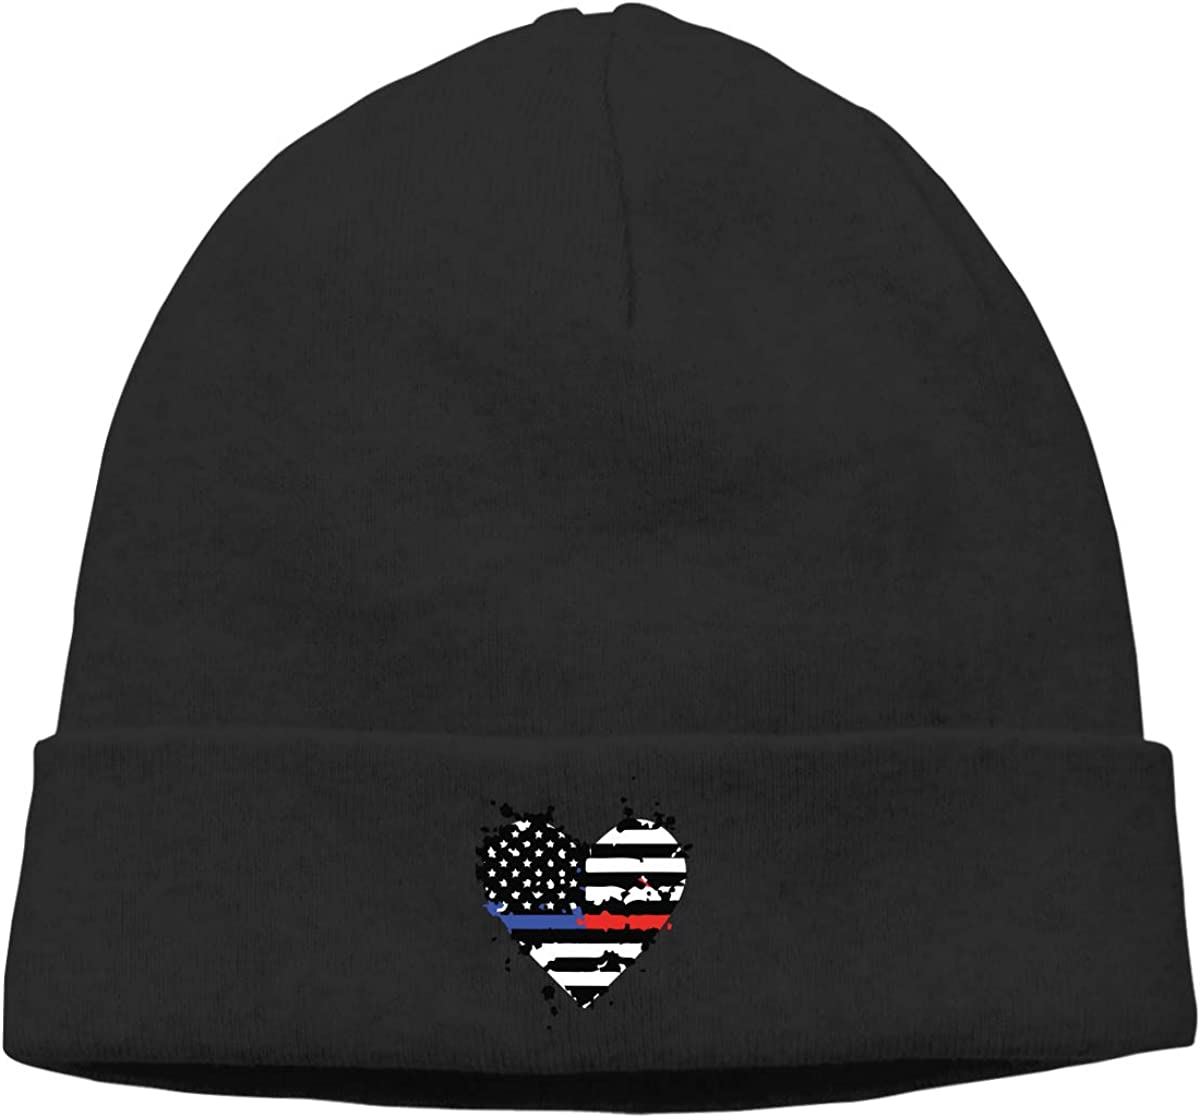 Thin Thin Blue Red Line Flag Heart Men /& Women Solid Color Beanie Hat Stretchy /& Soft Winter Cap